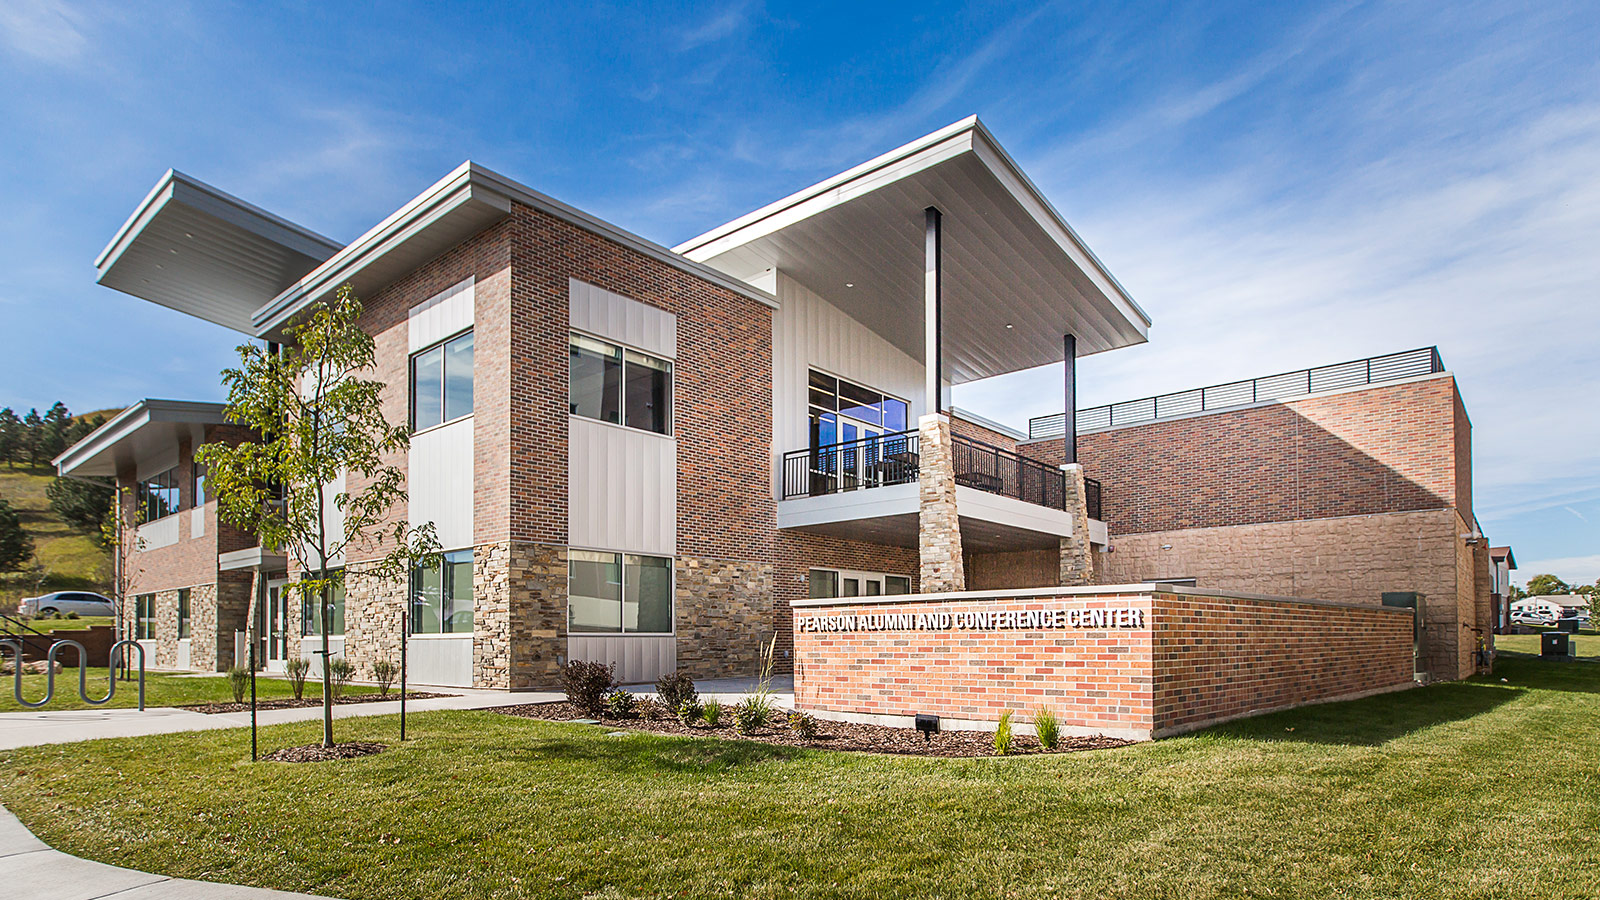 South Dakota School of Mines & Technology Foundation Pearson Alumni and Conference Center